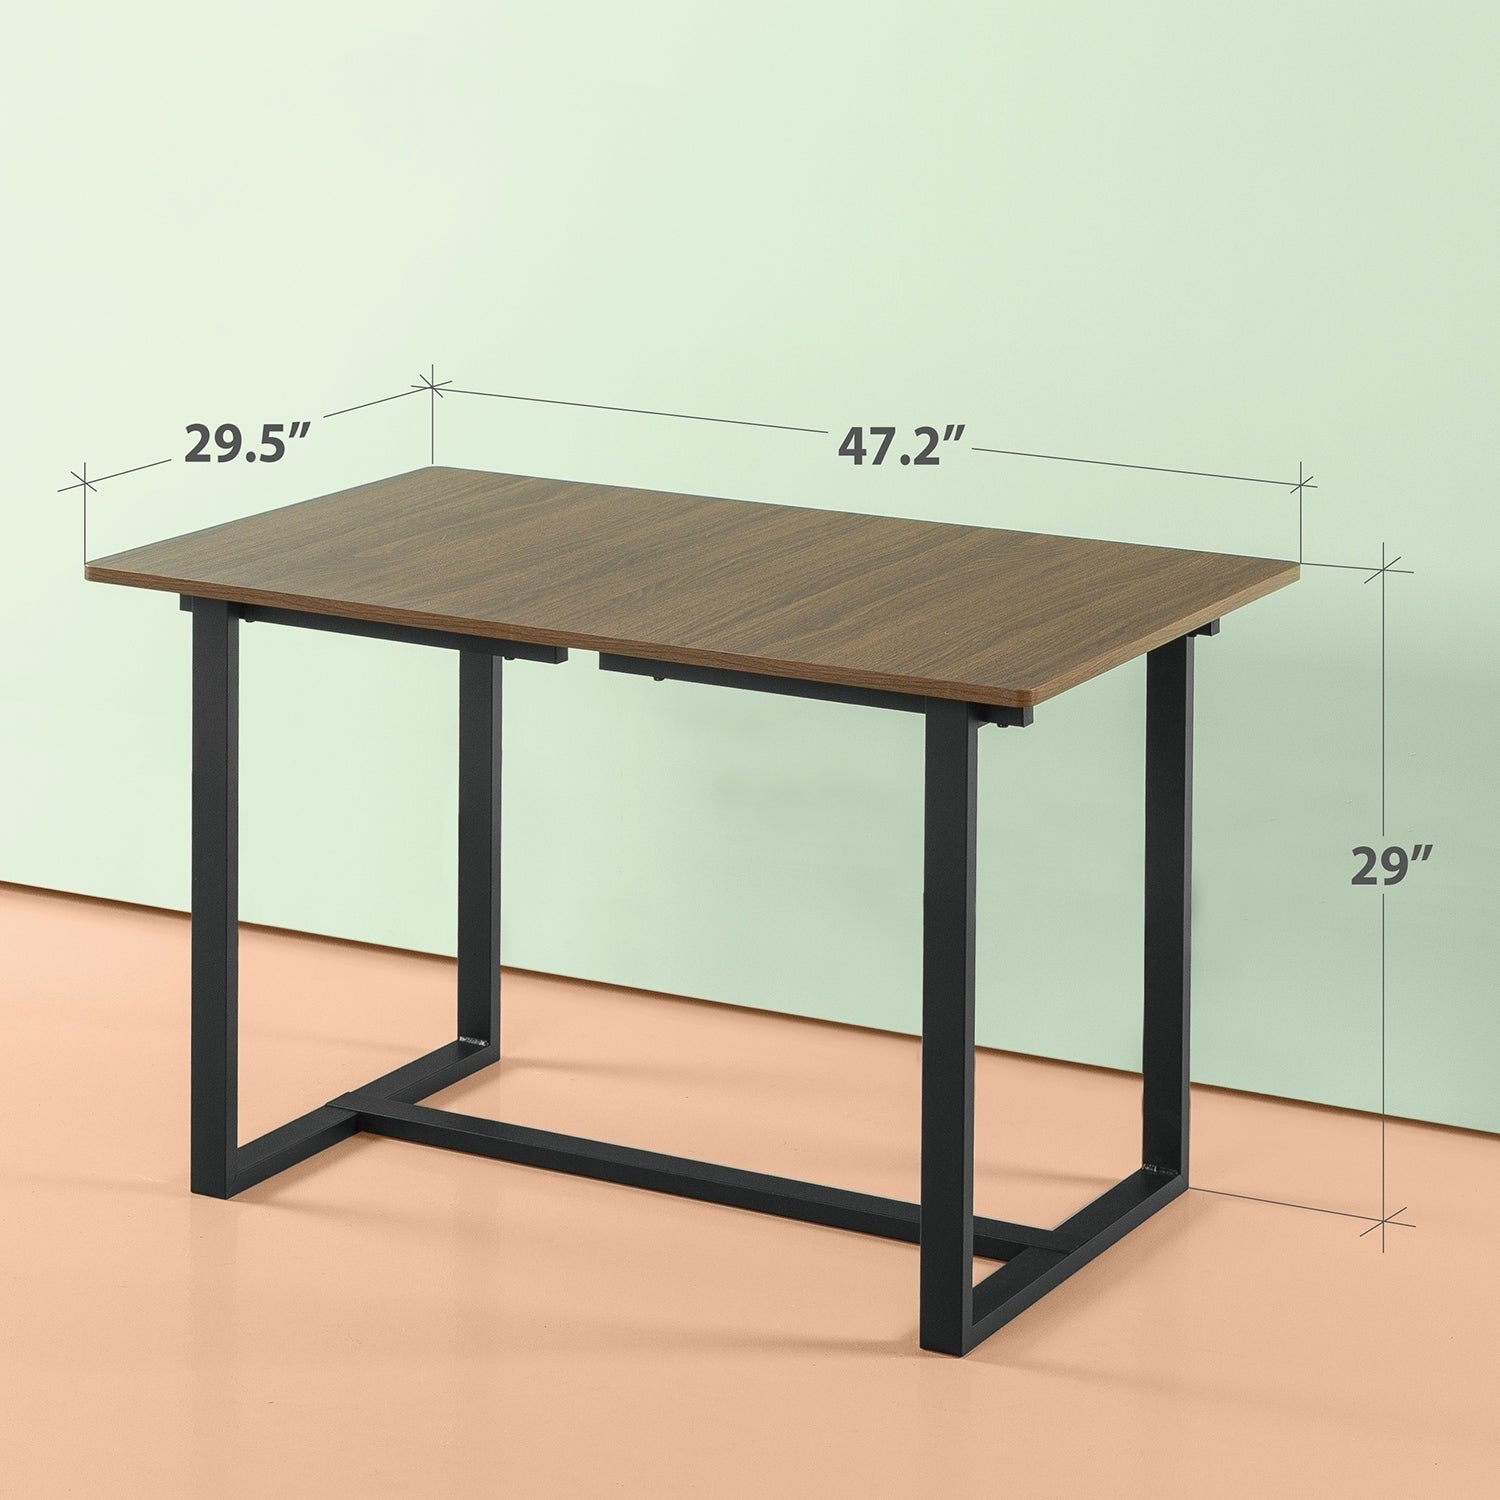 Shop Priage By Zinus Alto Rectangular Dining Table Table Only